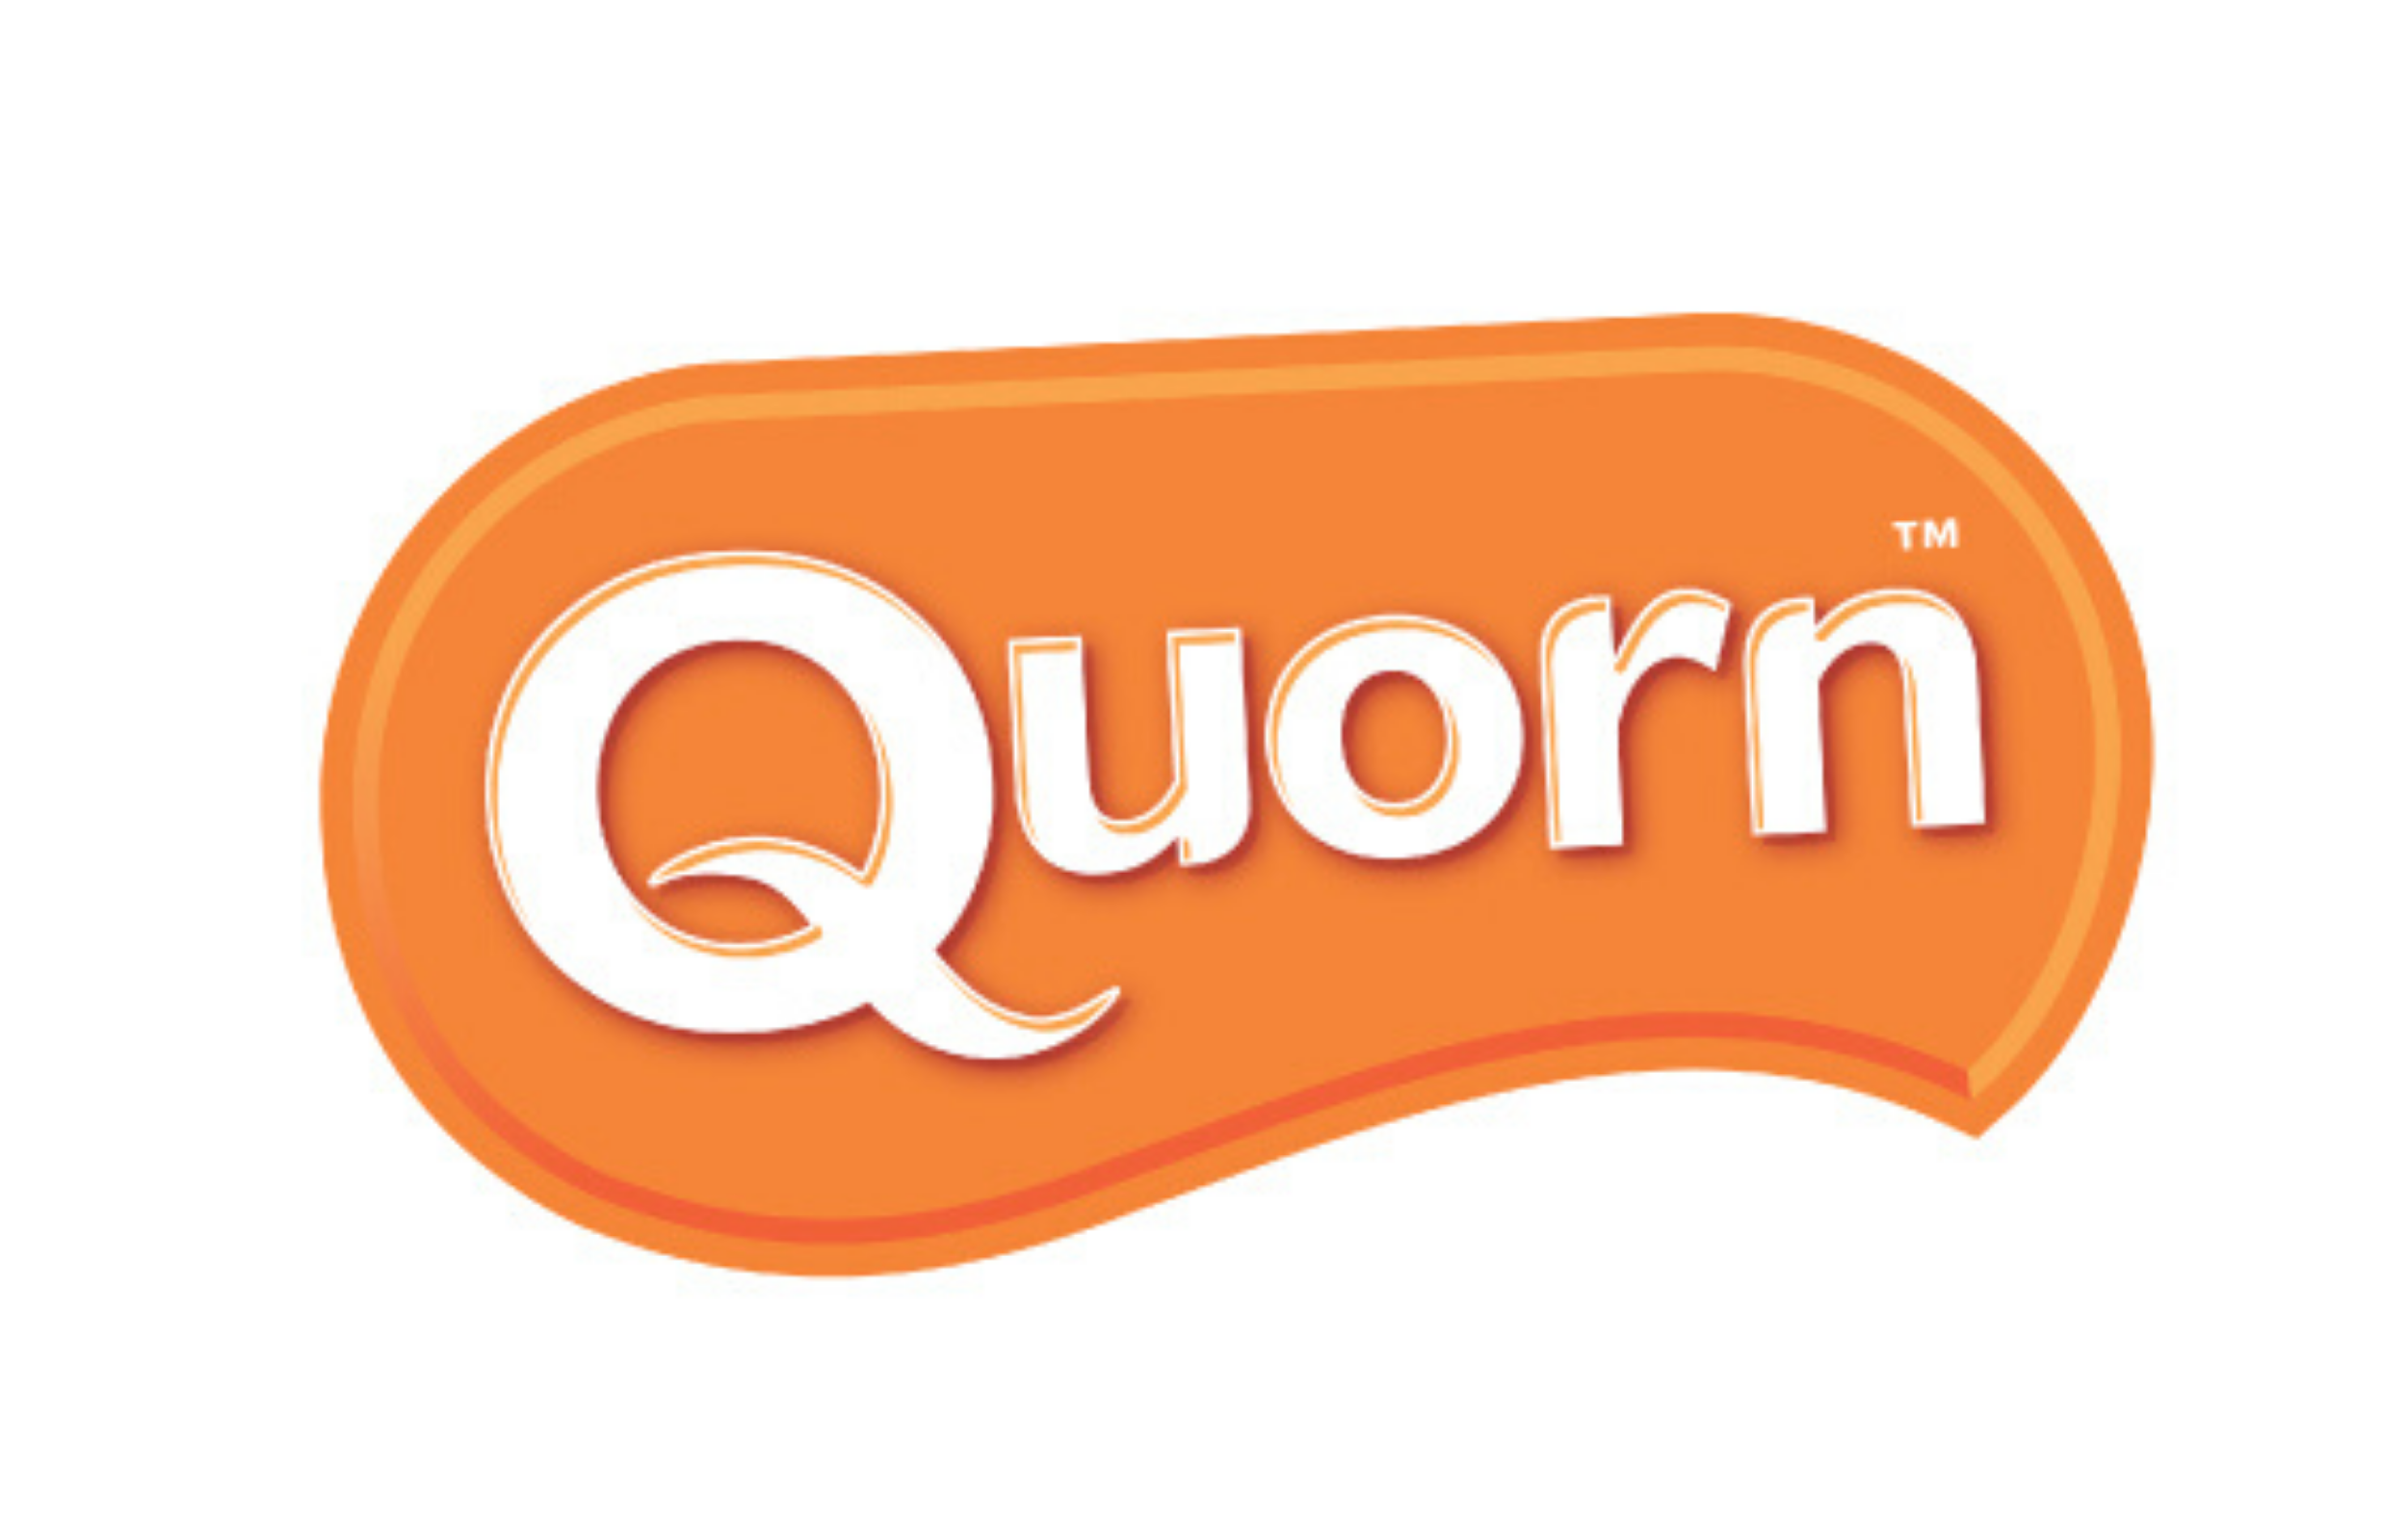 What We Know Brand Awareness for the Quorn Brand